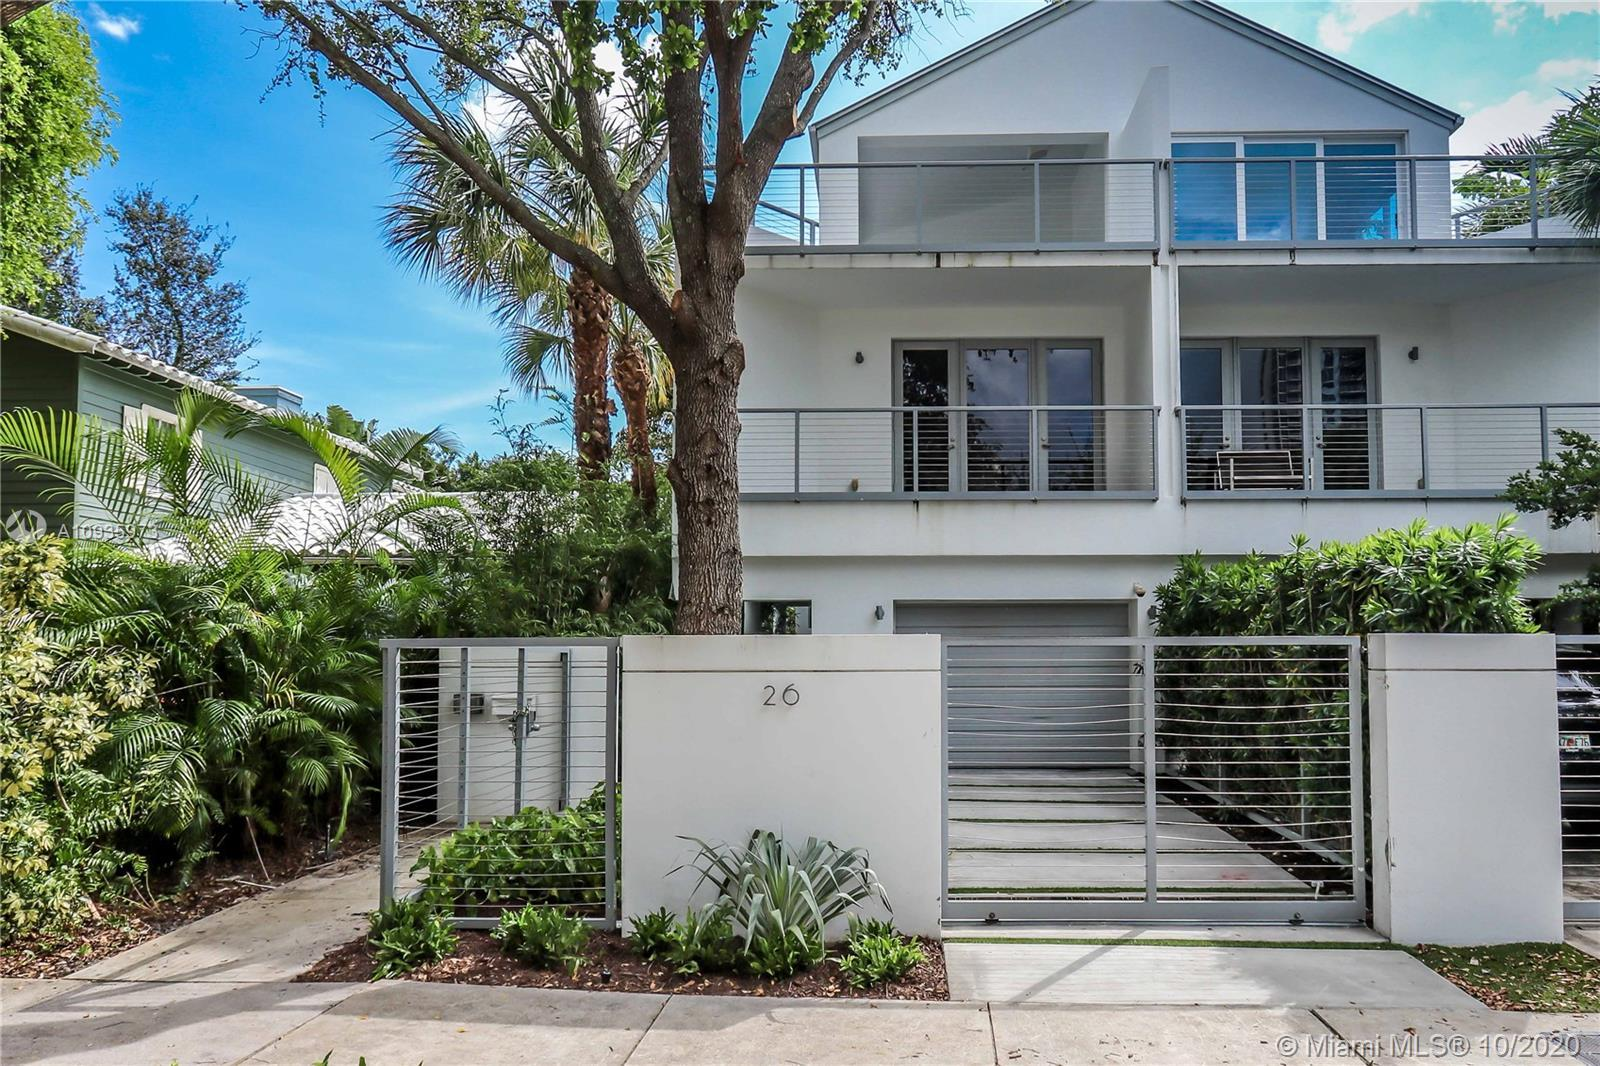 Massive, fee simple, 3 story townhome located in the heart of Downtown Fort Lauderdale. This propert